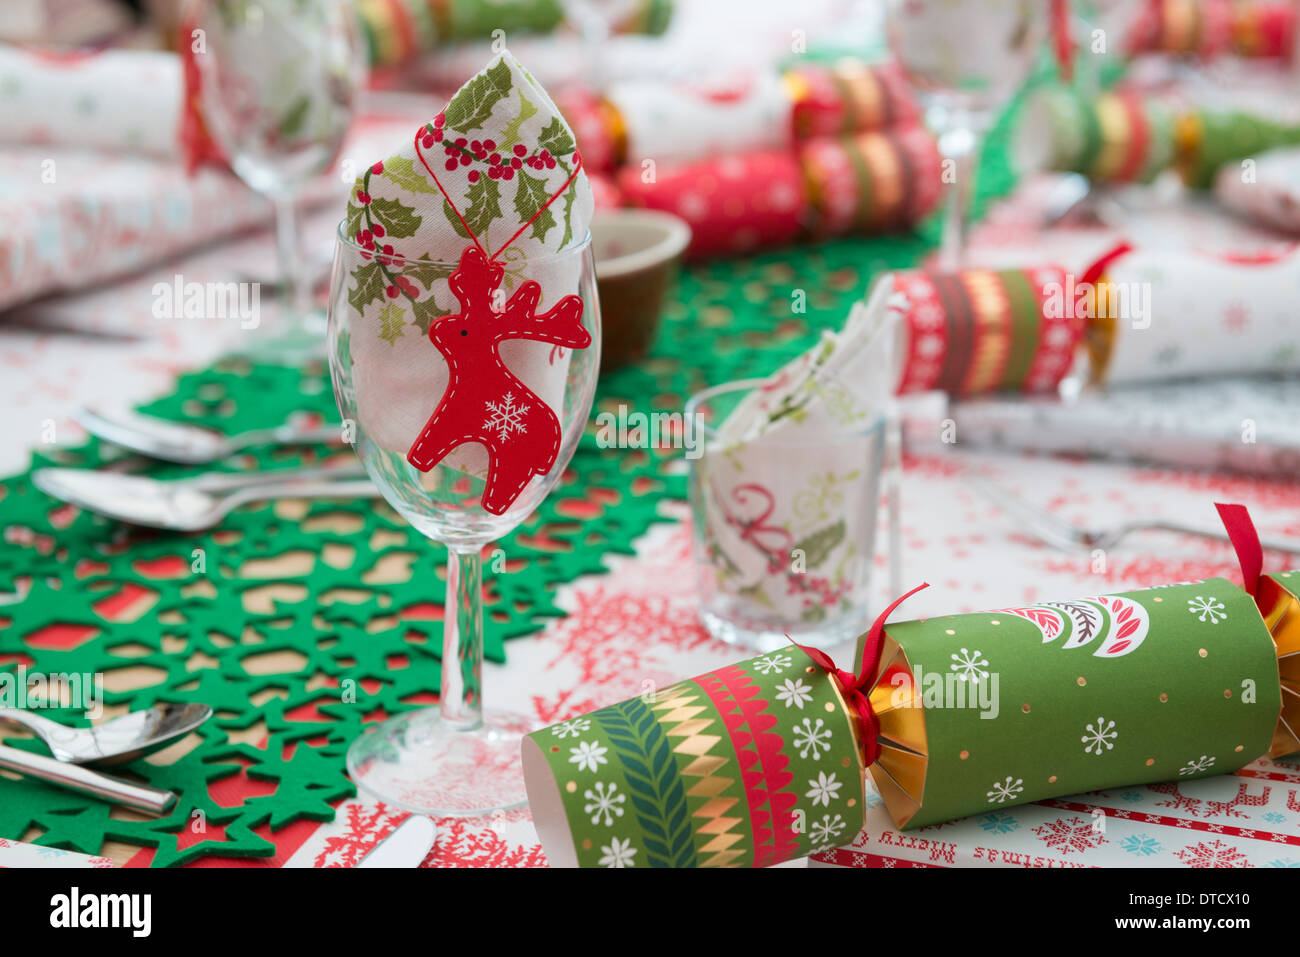 A table laid for Christmas - Stock Image